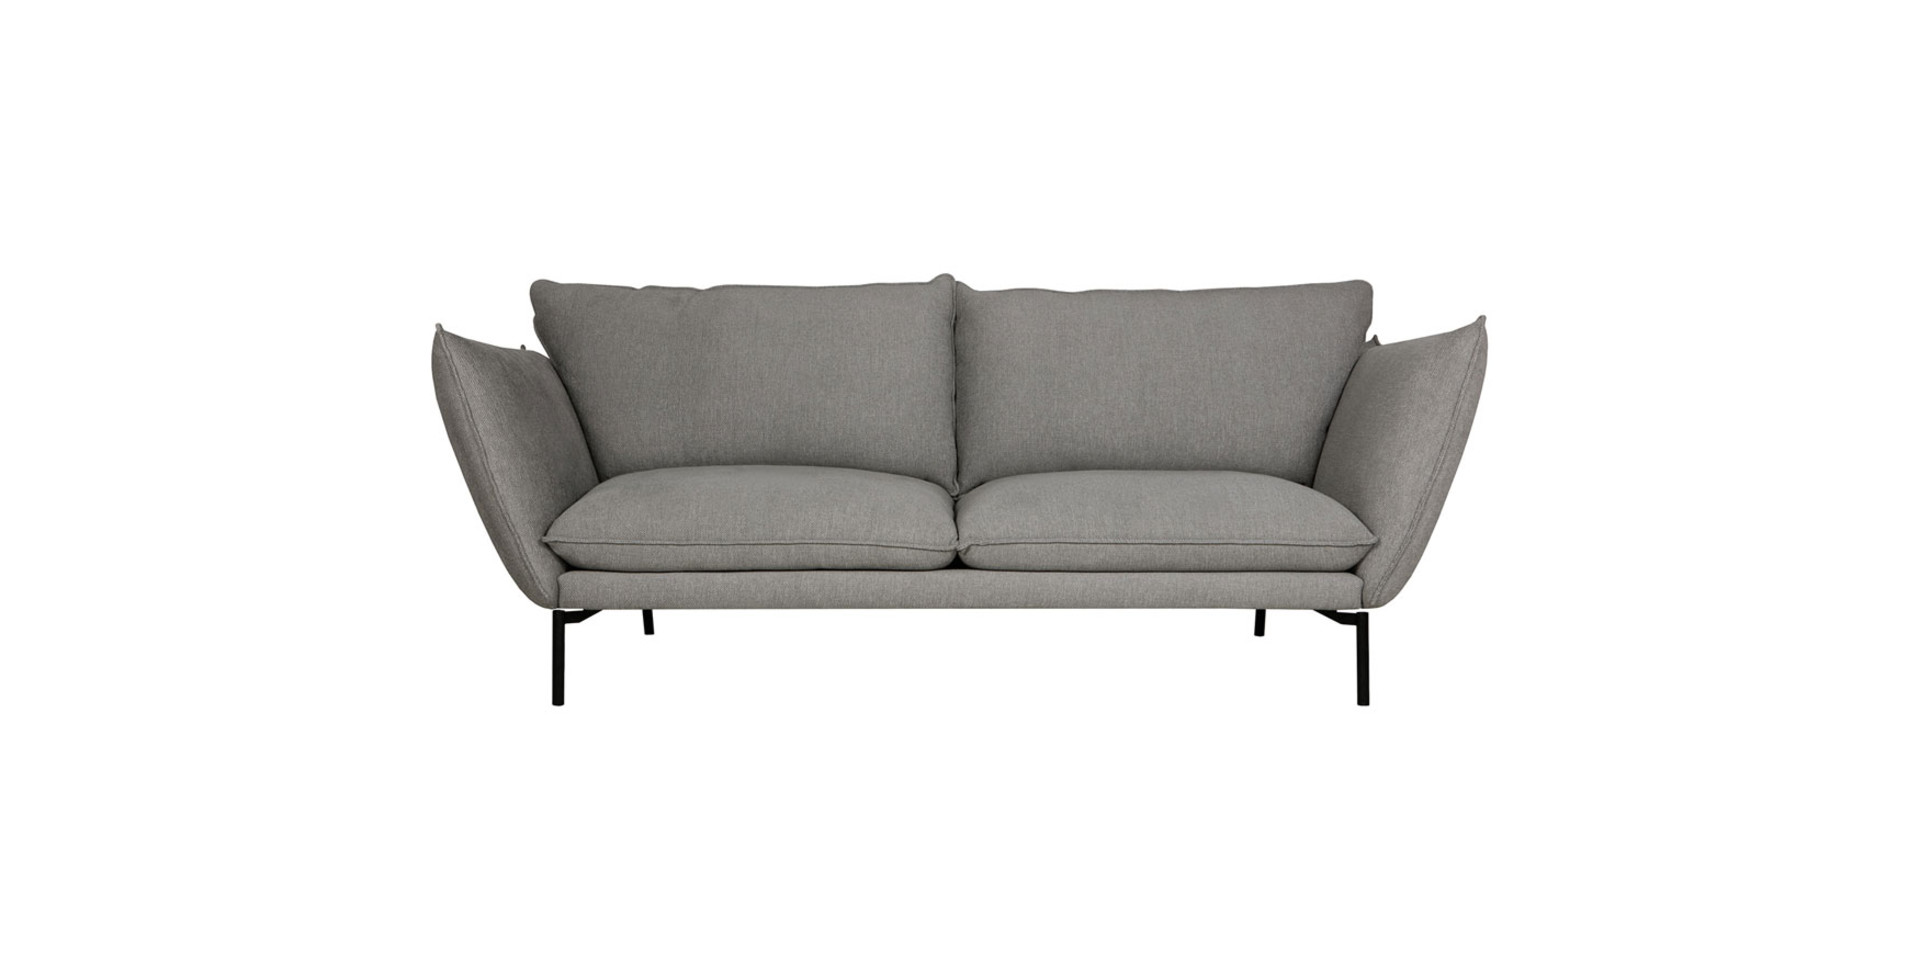 sits-hugo-canape-3seater_roma63_grey_1